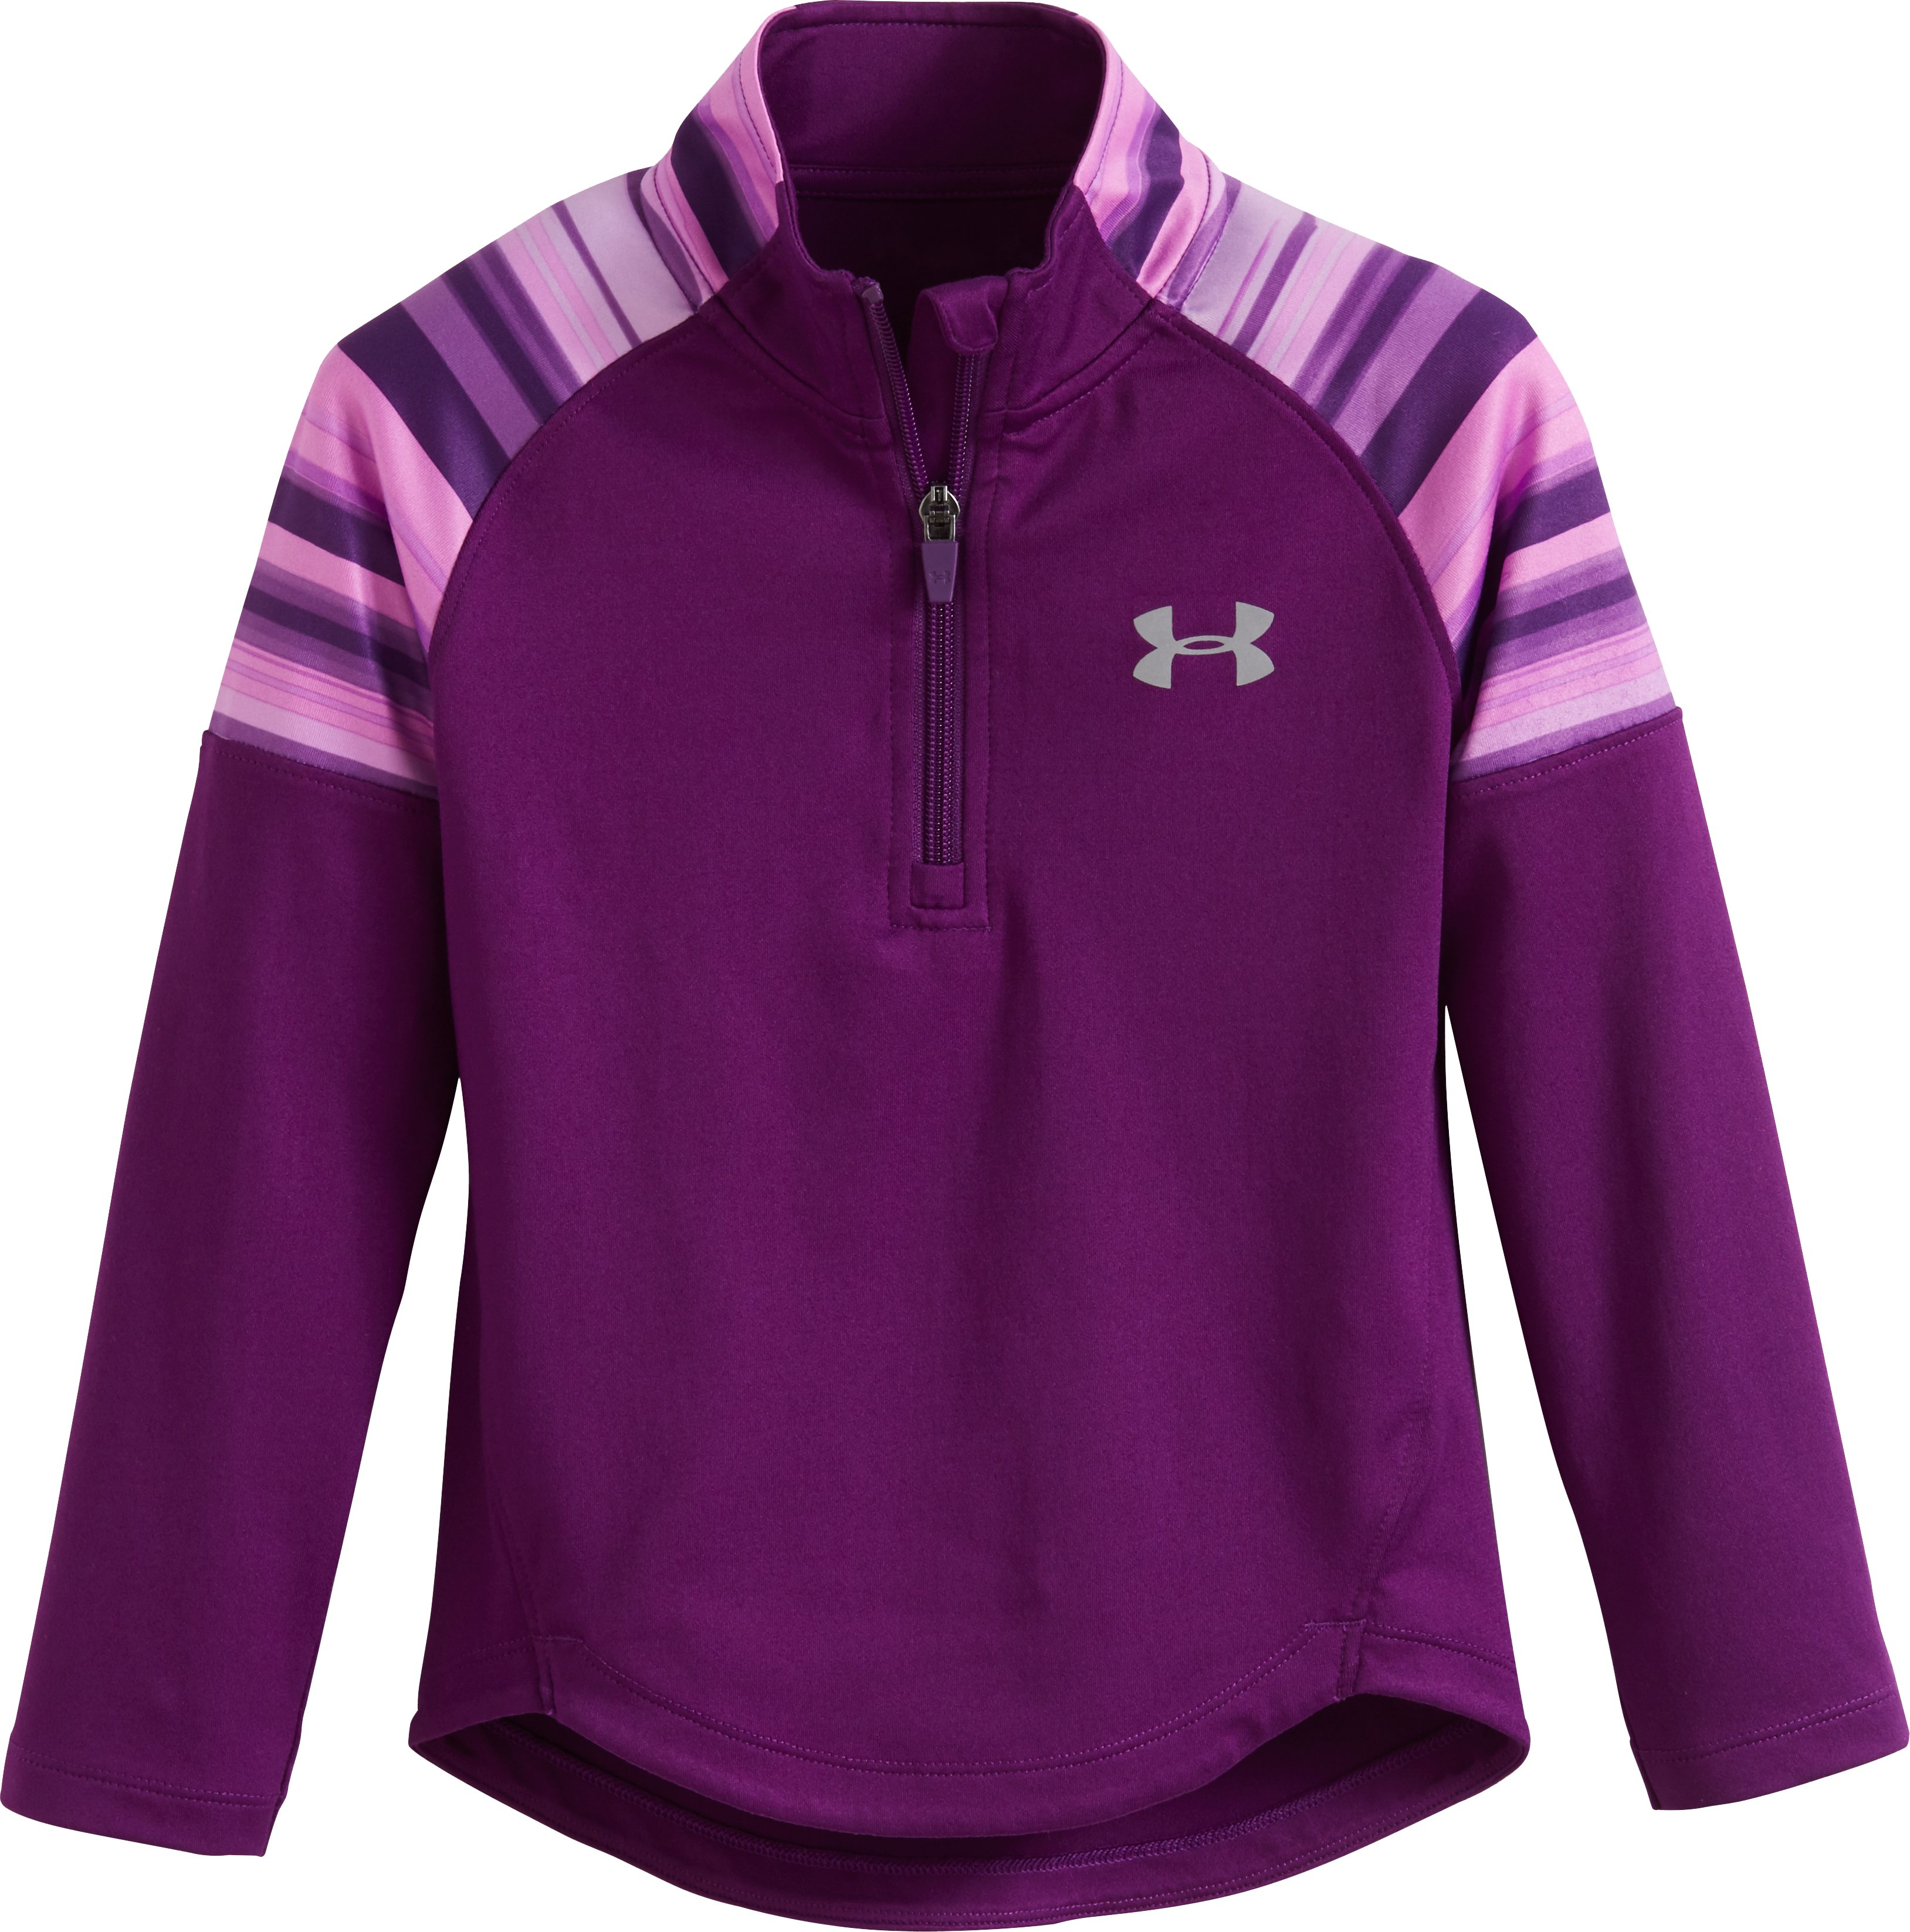 Girls' Infant UA Blurred Stripe 1/4 Zip, Hendrix, zoomed image